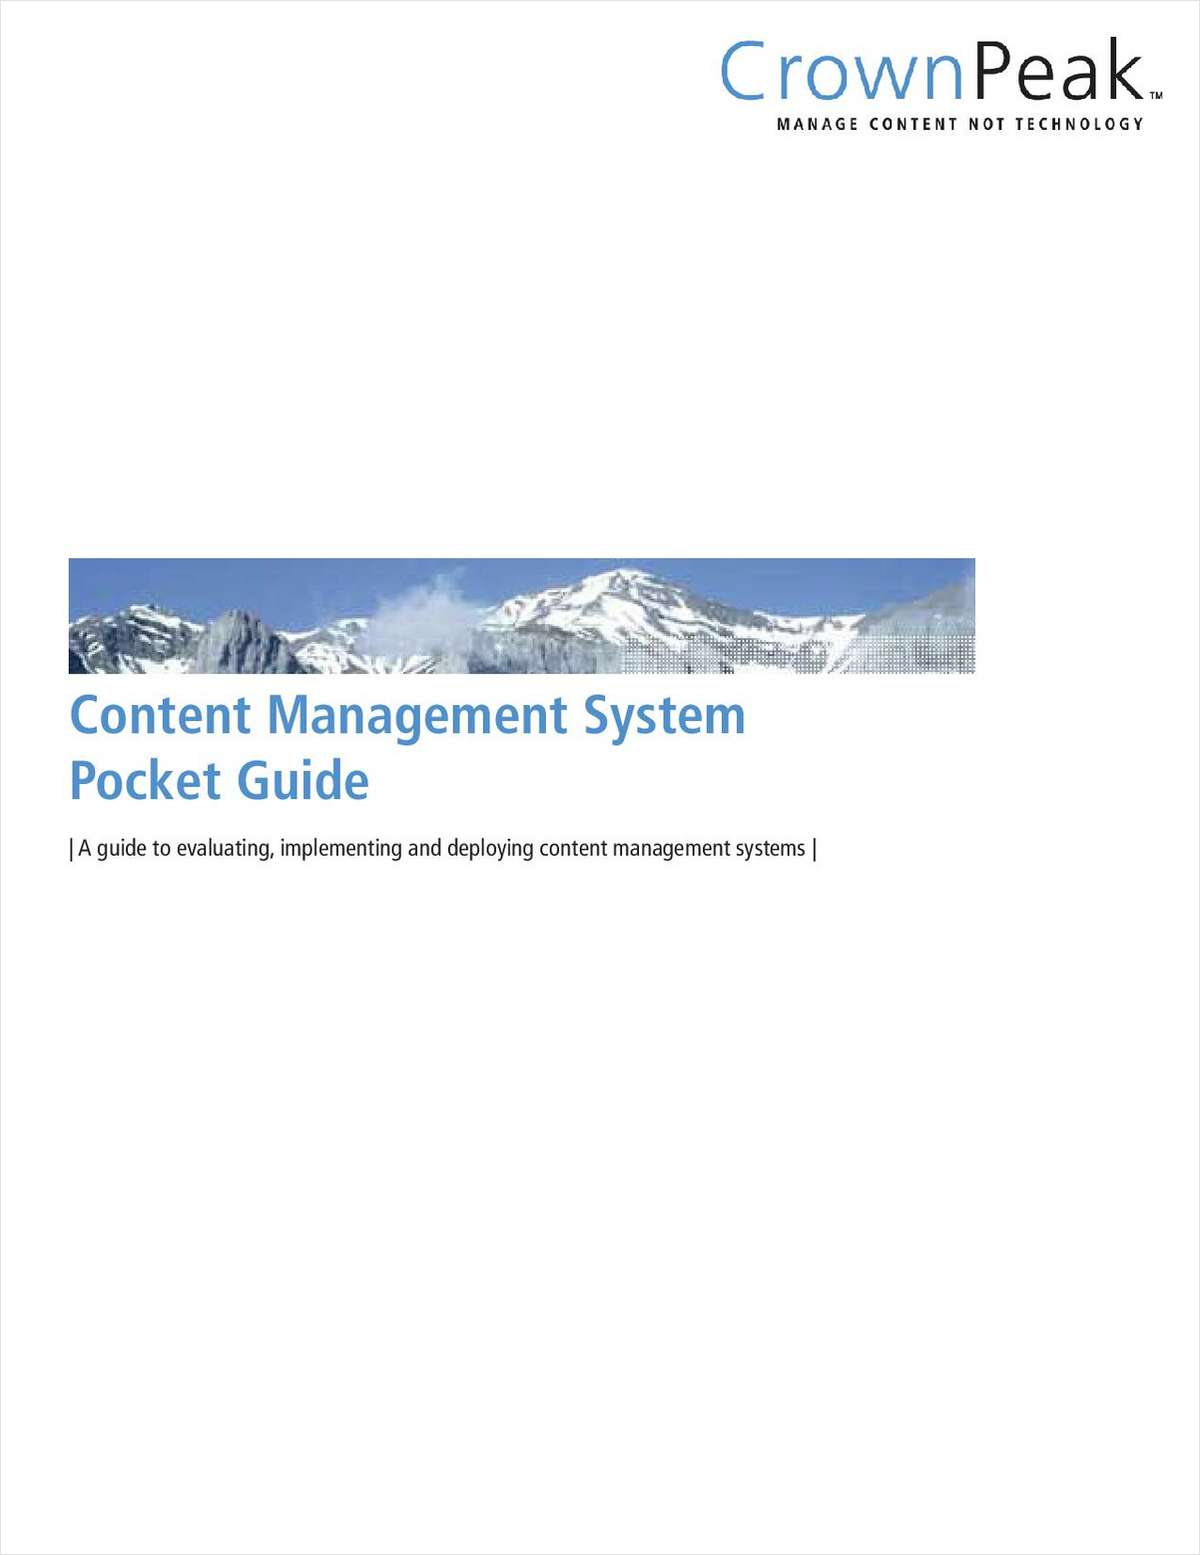 Content Management System Pocket Guide - A Guide to Evaluating, Implementing and Deploying Content Management Systems